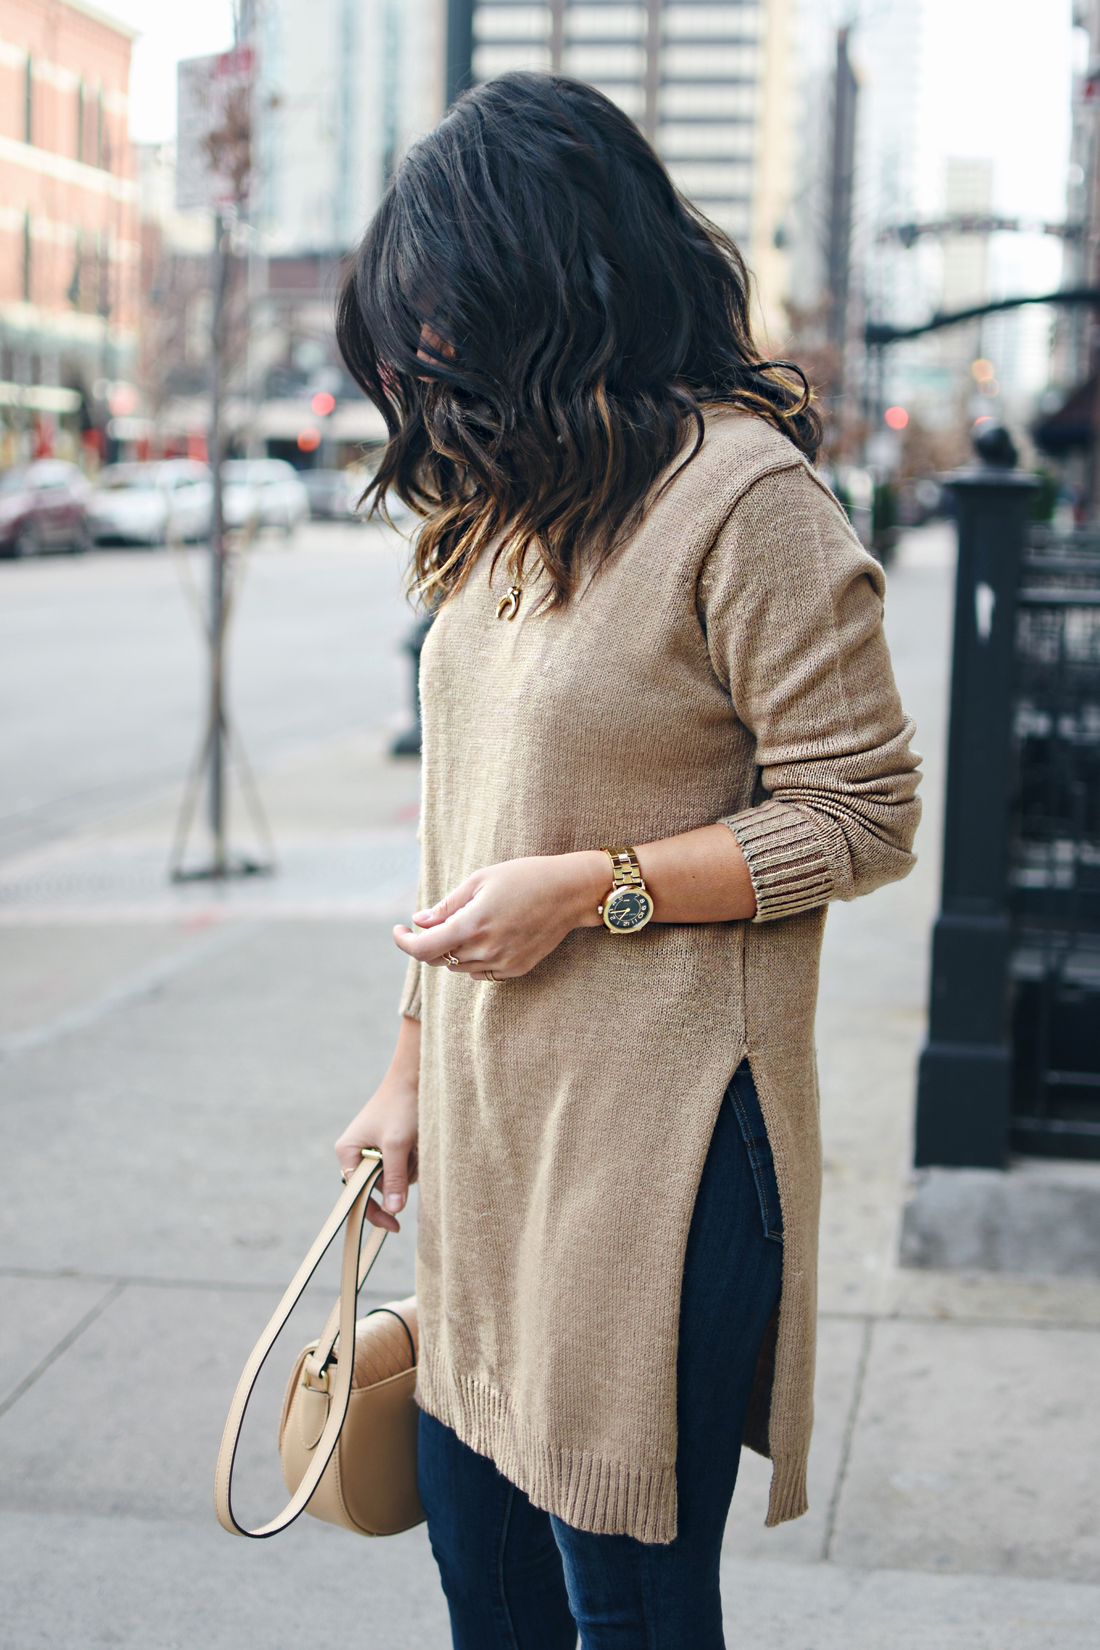 Carolina Hella of Chic Talk wearing a NA-KD sweater, Marc Jacobs watch and Paige jeans